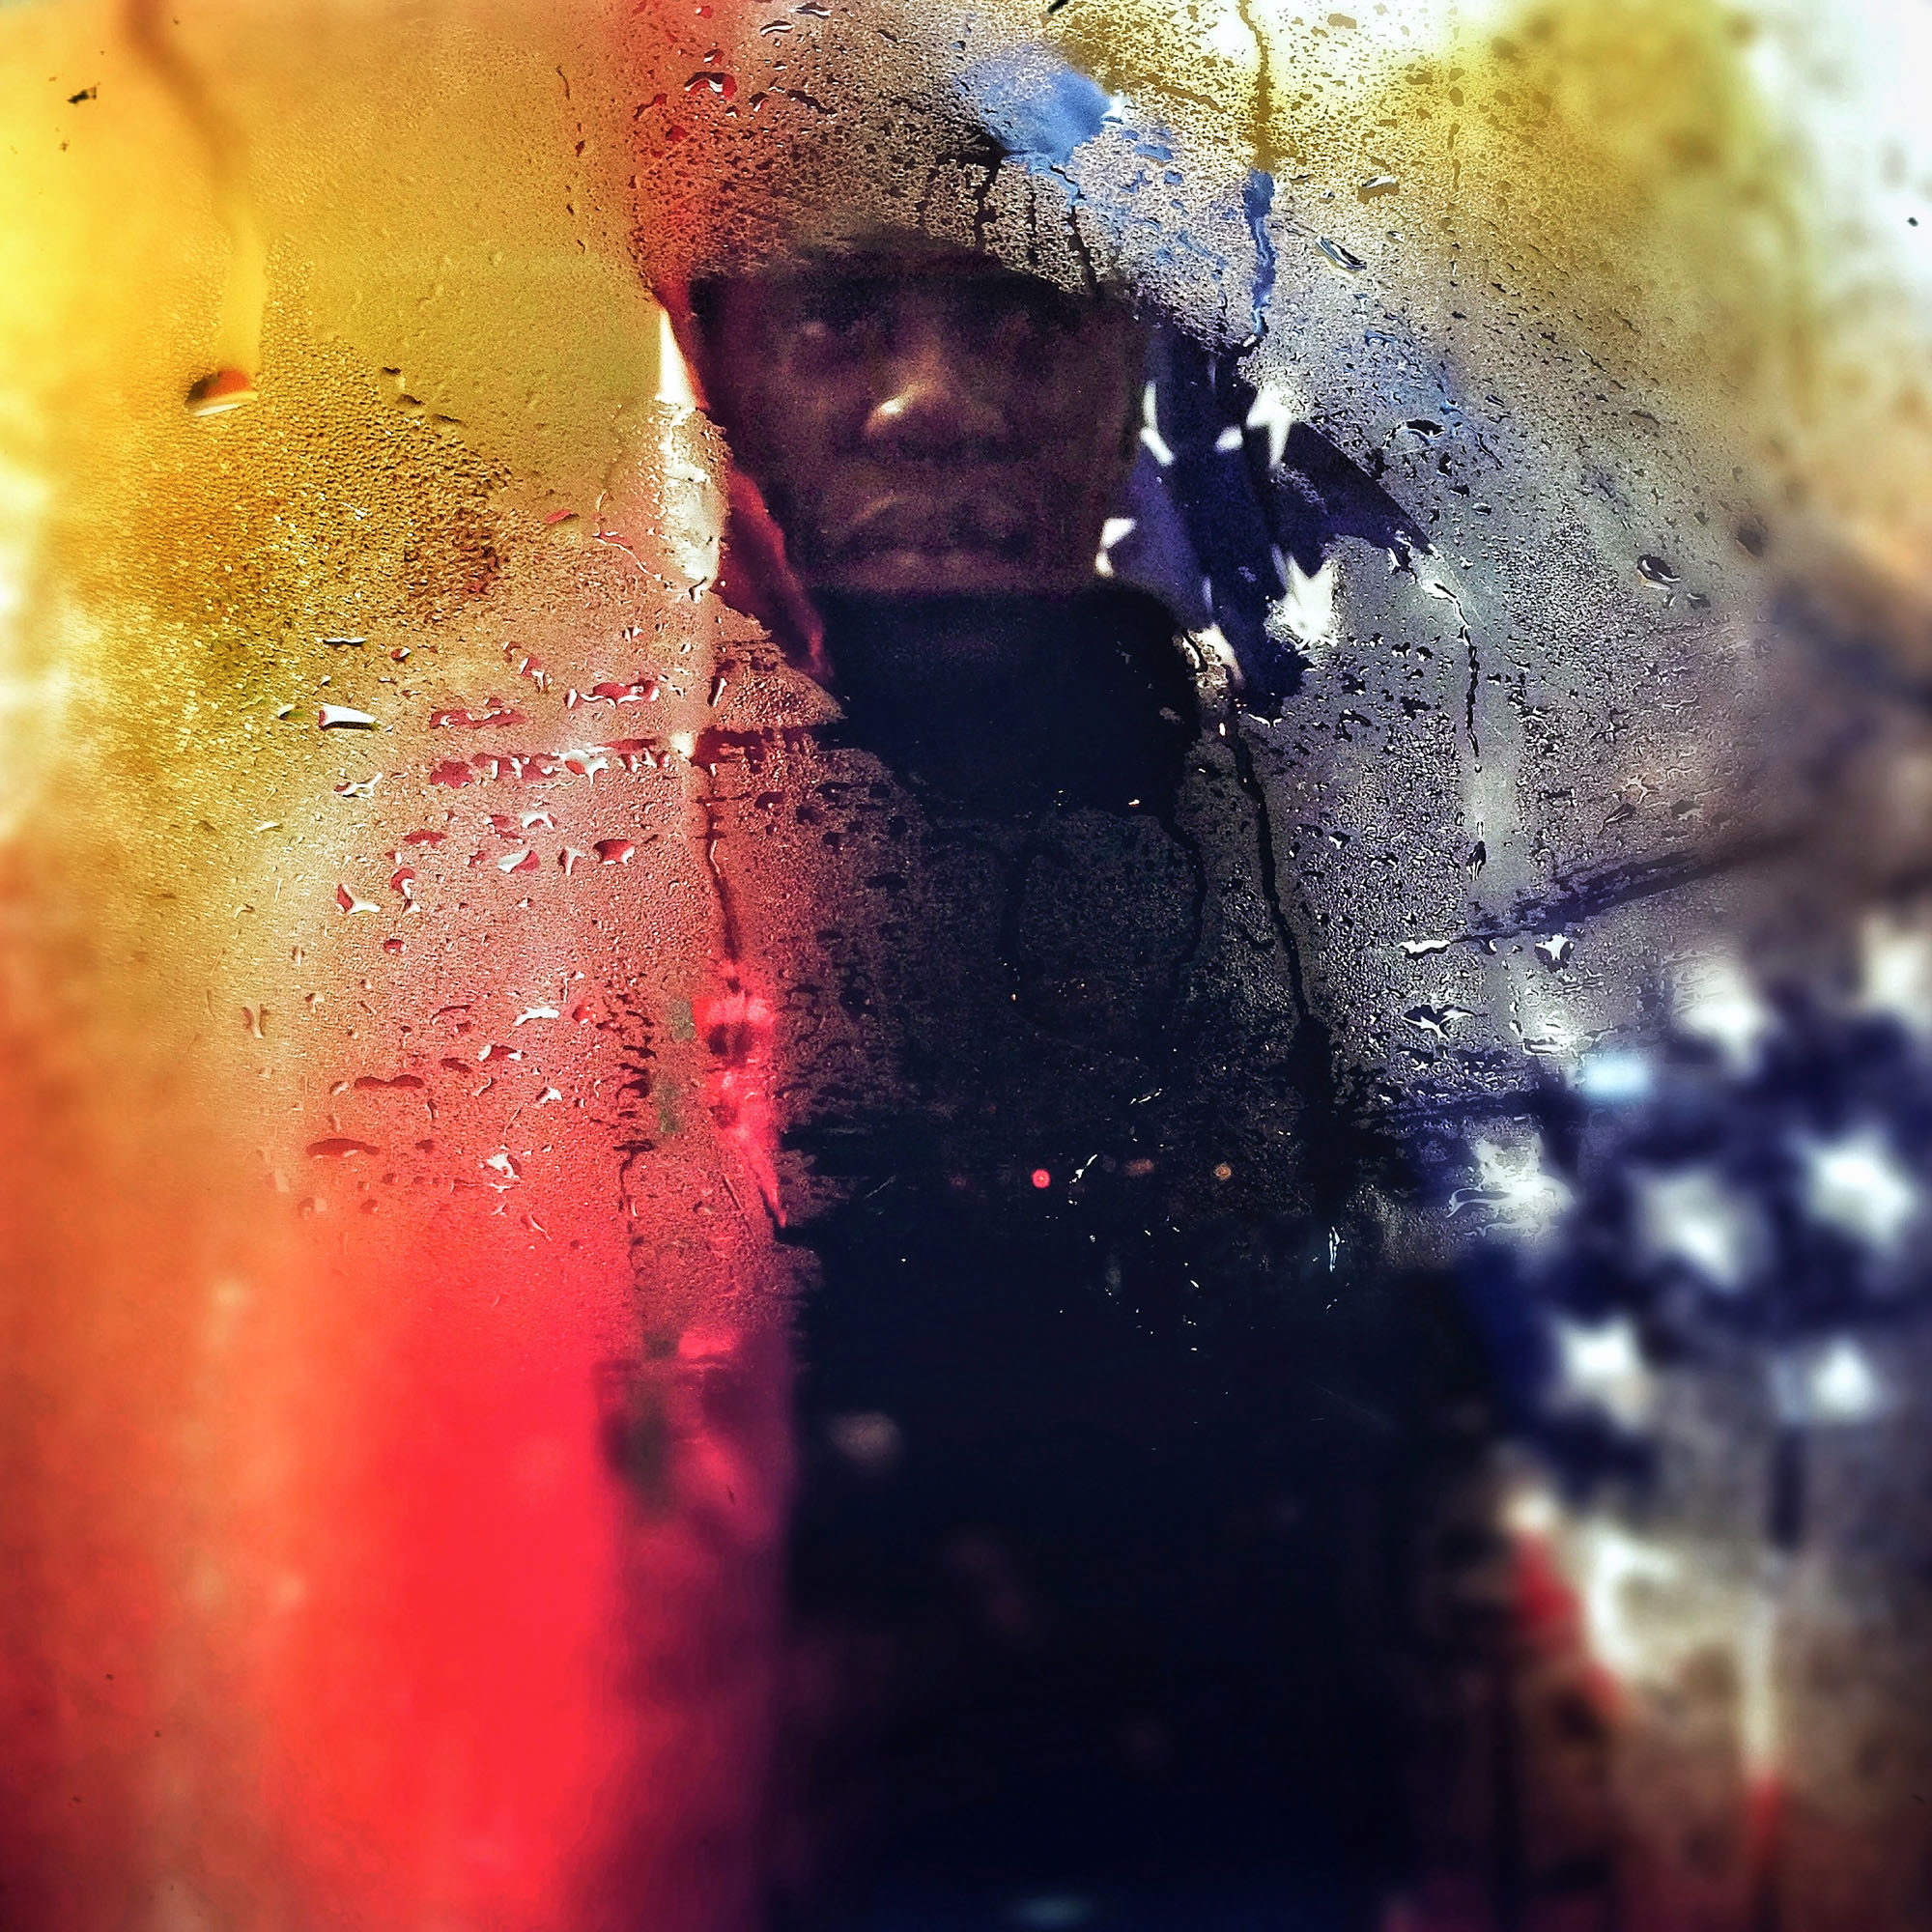 When Living Is A Protest, Steven Kasher Gallery, N.Y.: Sept. 16 - Oct. 29                                                               (Caption: Colours - Marlon Jones from the Immigrant Series, New York, NY, July 4, 2014)